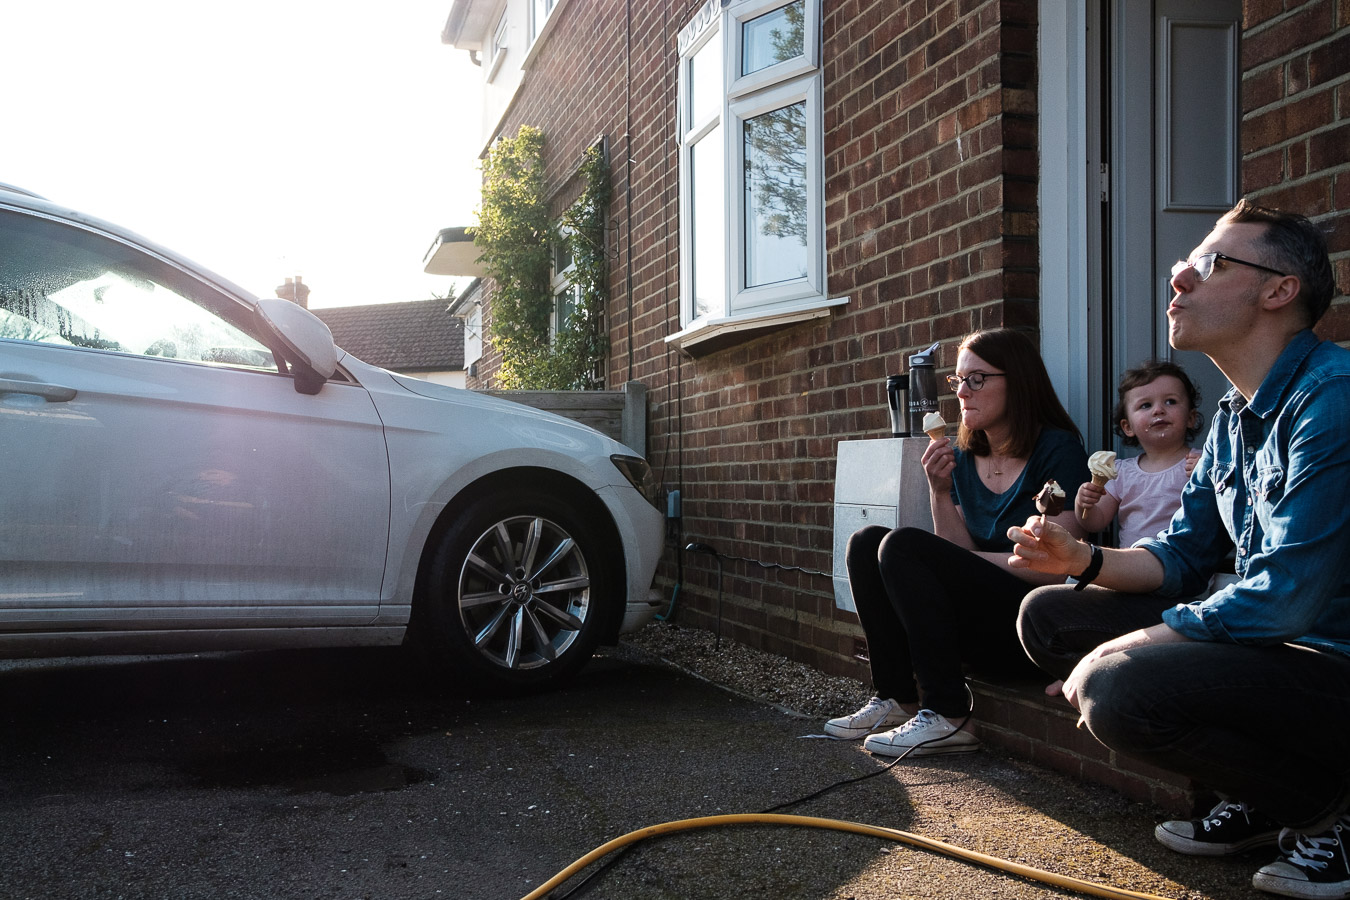 Family relax on front porch with ice creams after a session cleaning car.